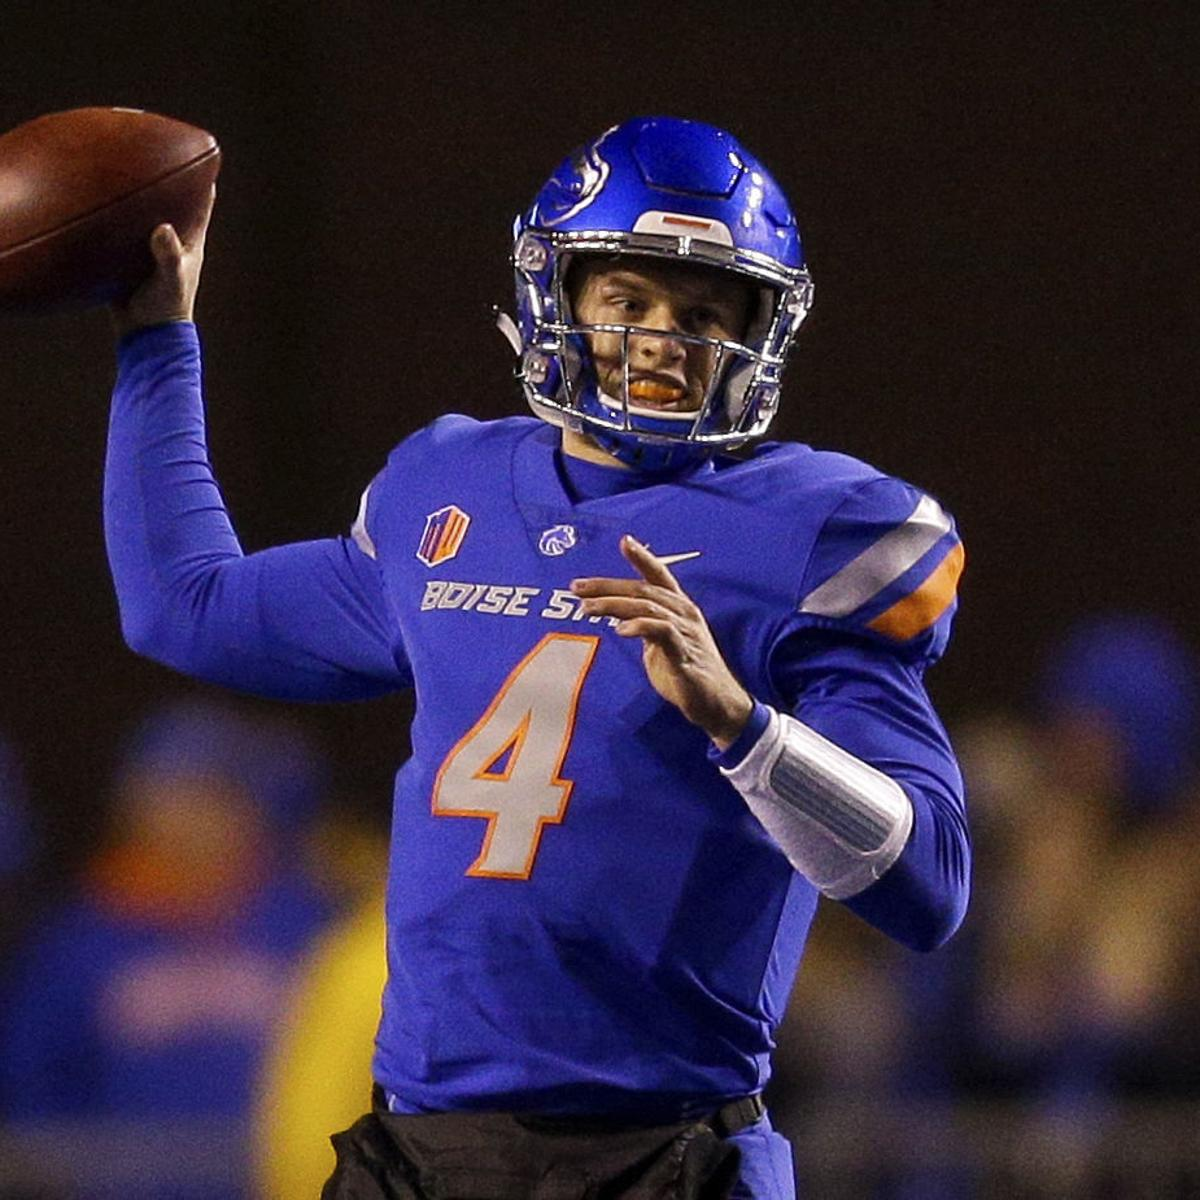 sale retailer 60fc0 c41c8 Why did Brett Rypien sign with the Denver Broncos? For him ...